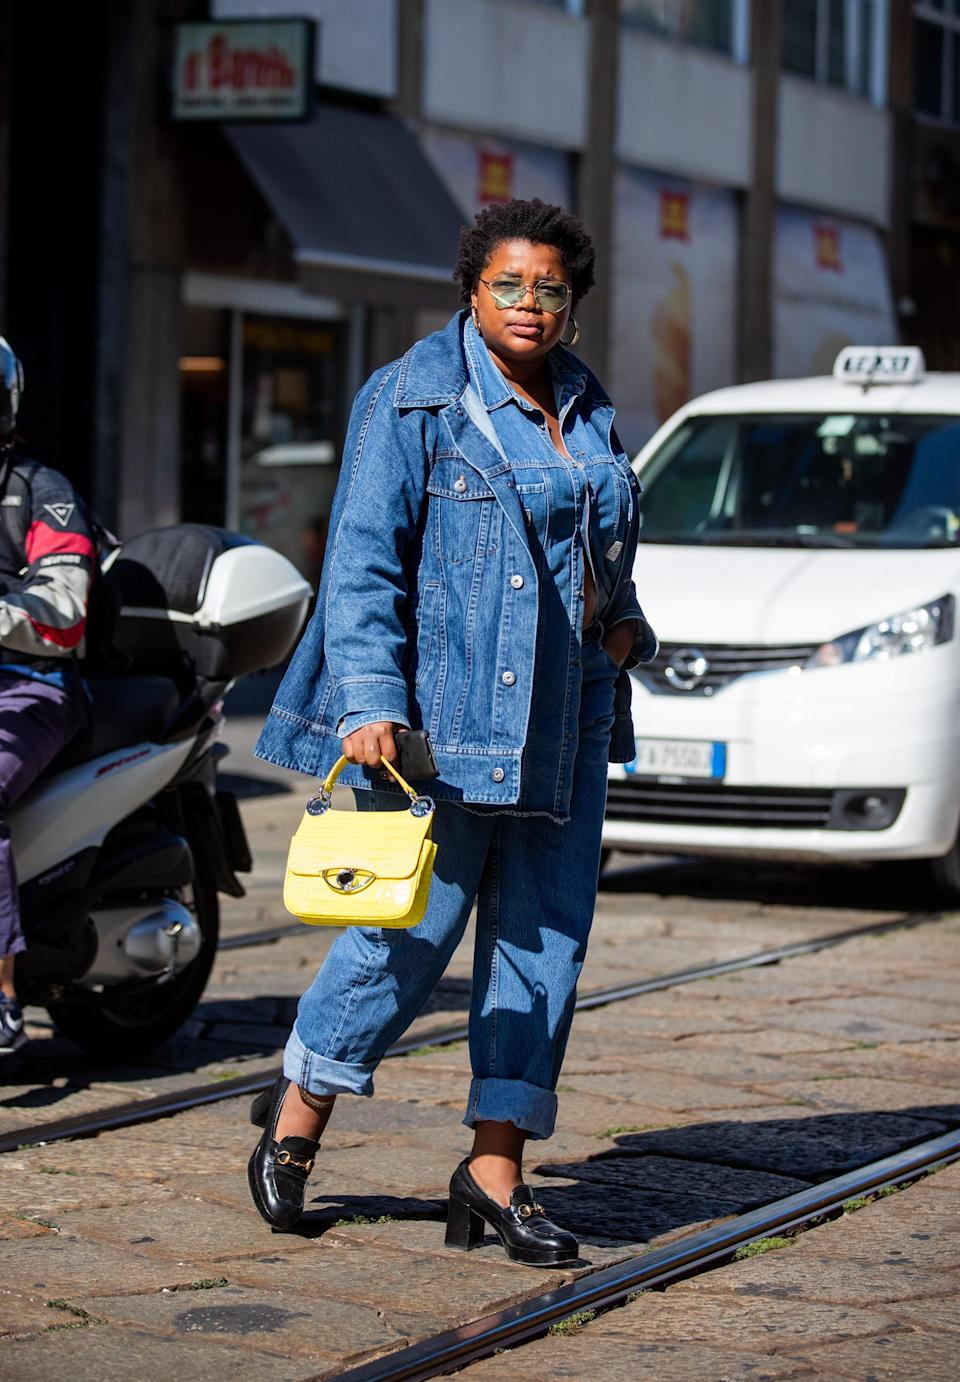 Another three-piece denim outfit that just <em>works</em>: cuffed jeans, a top, and jacket all in the same shade of blue. A pair of Gucci loafers, of course, is a nice touch.